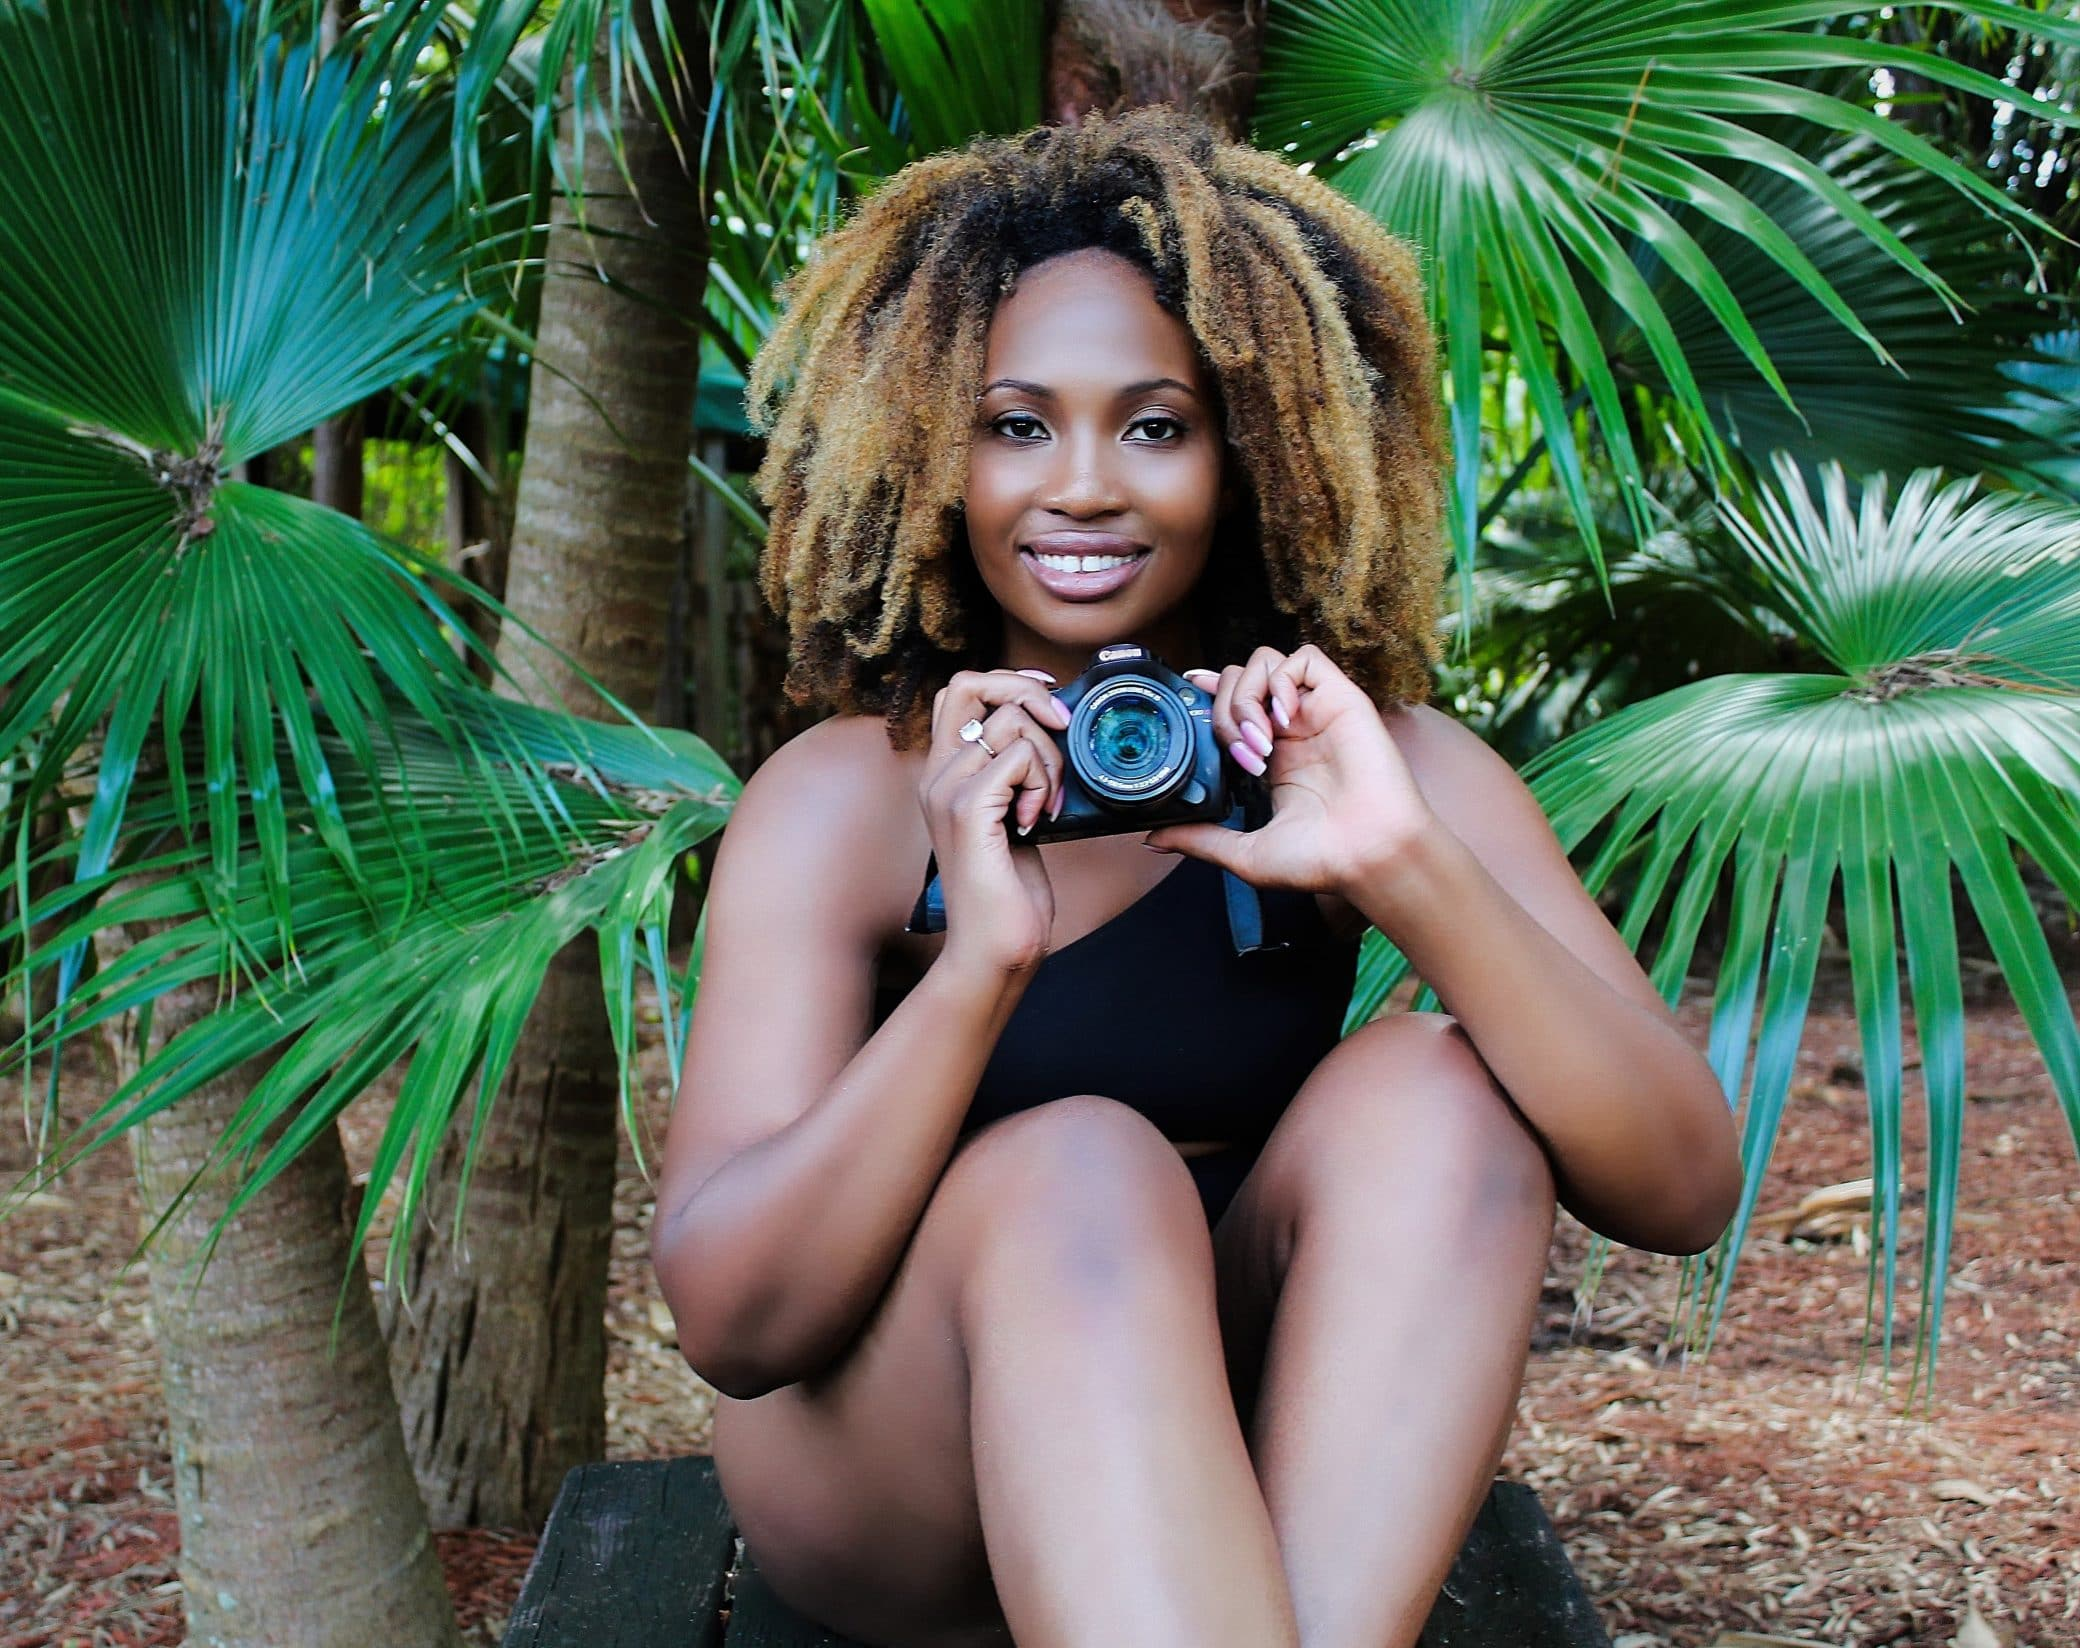 Beautiful black woman posing wearing a swimming suit sitting in front of a palm tree showing her legs